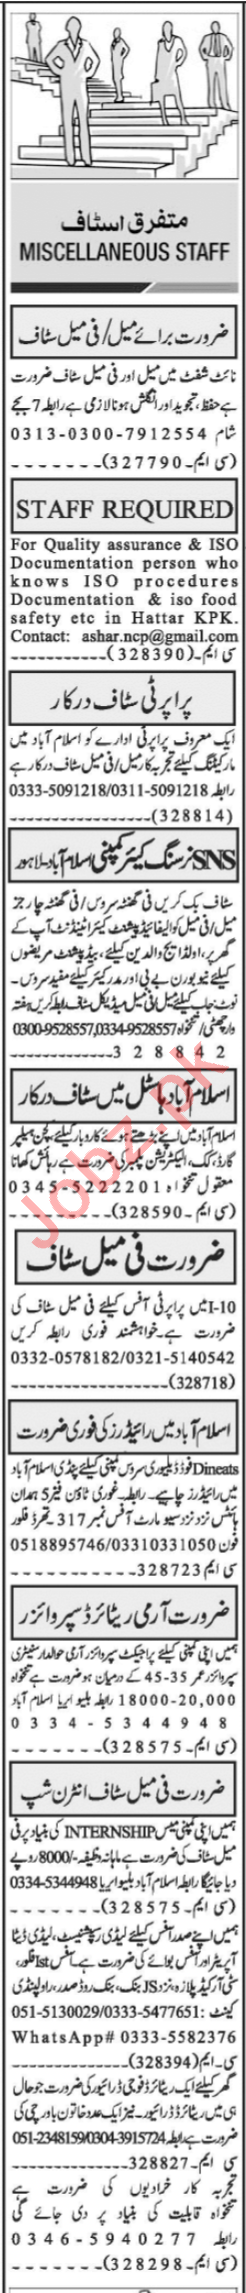 Quality Assurance Officer & Patient Care Attendant Jobs 2021